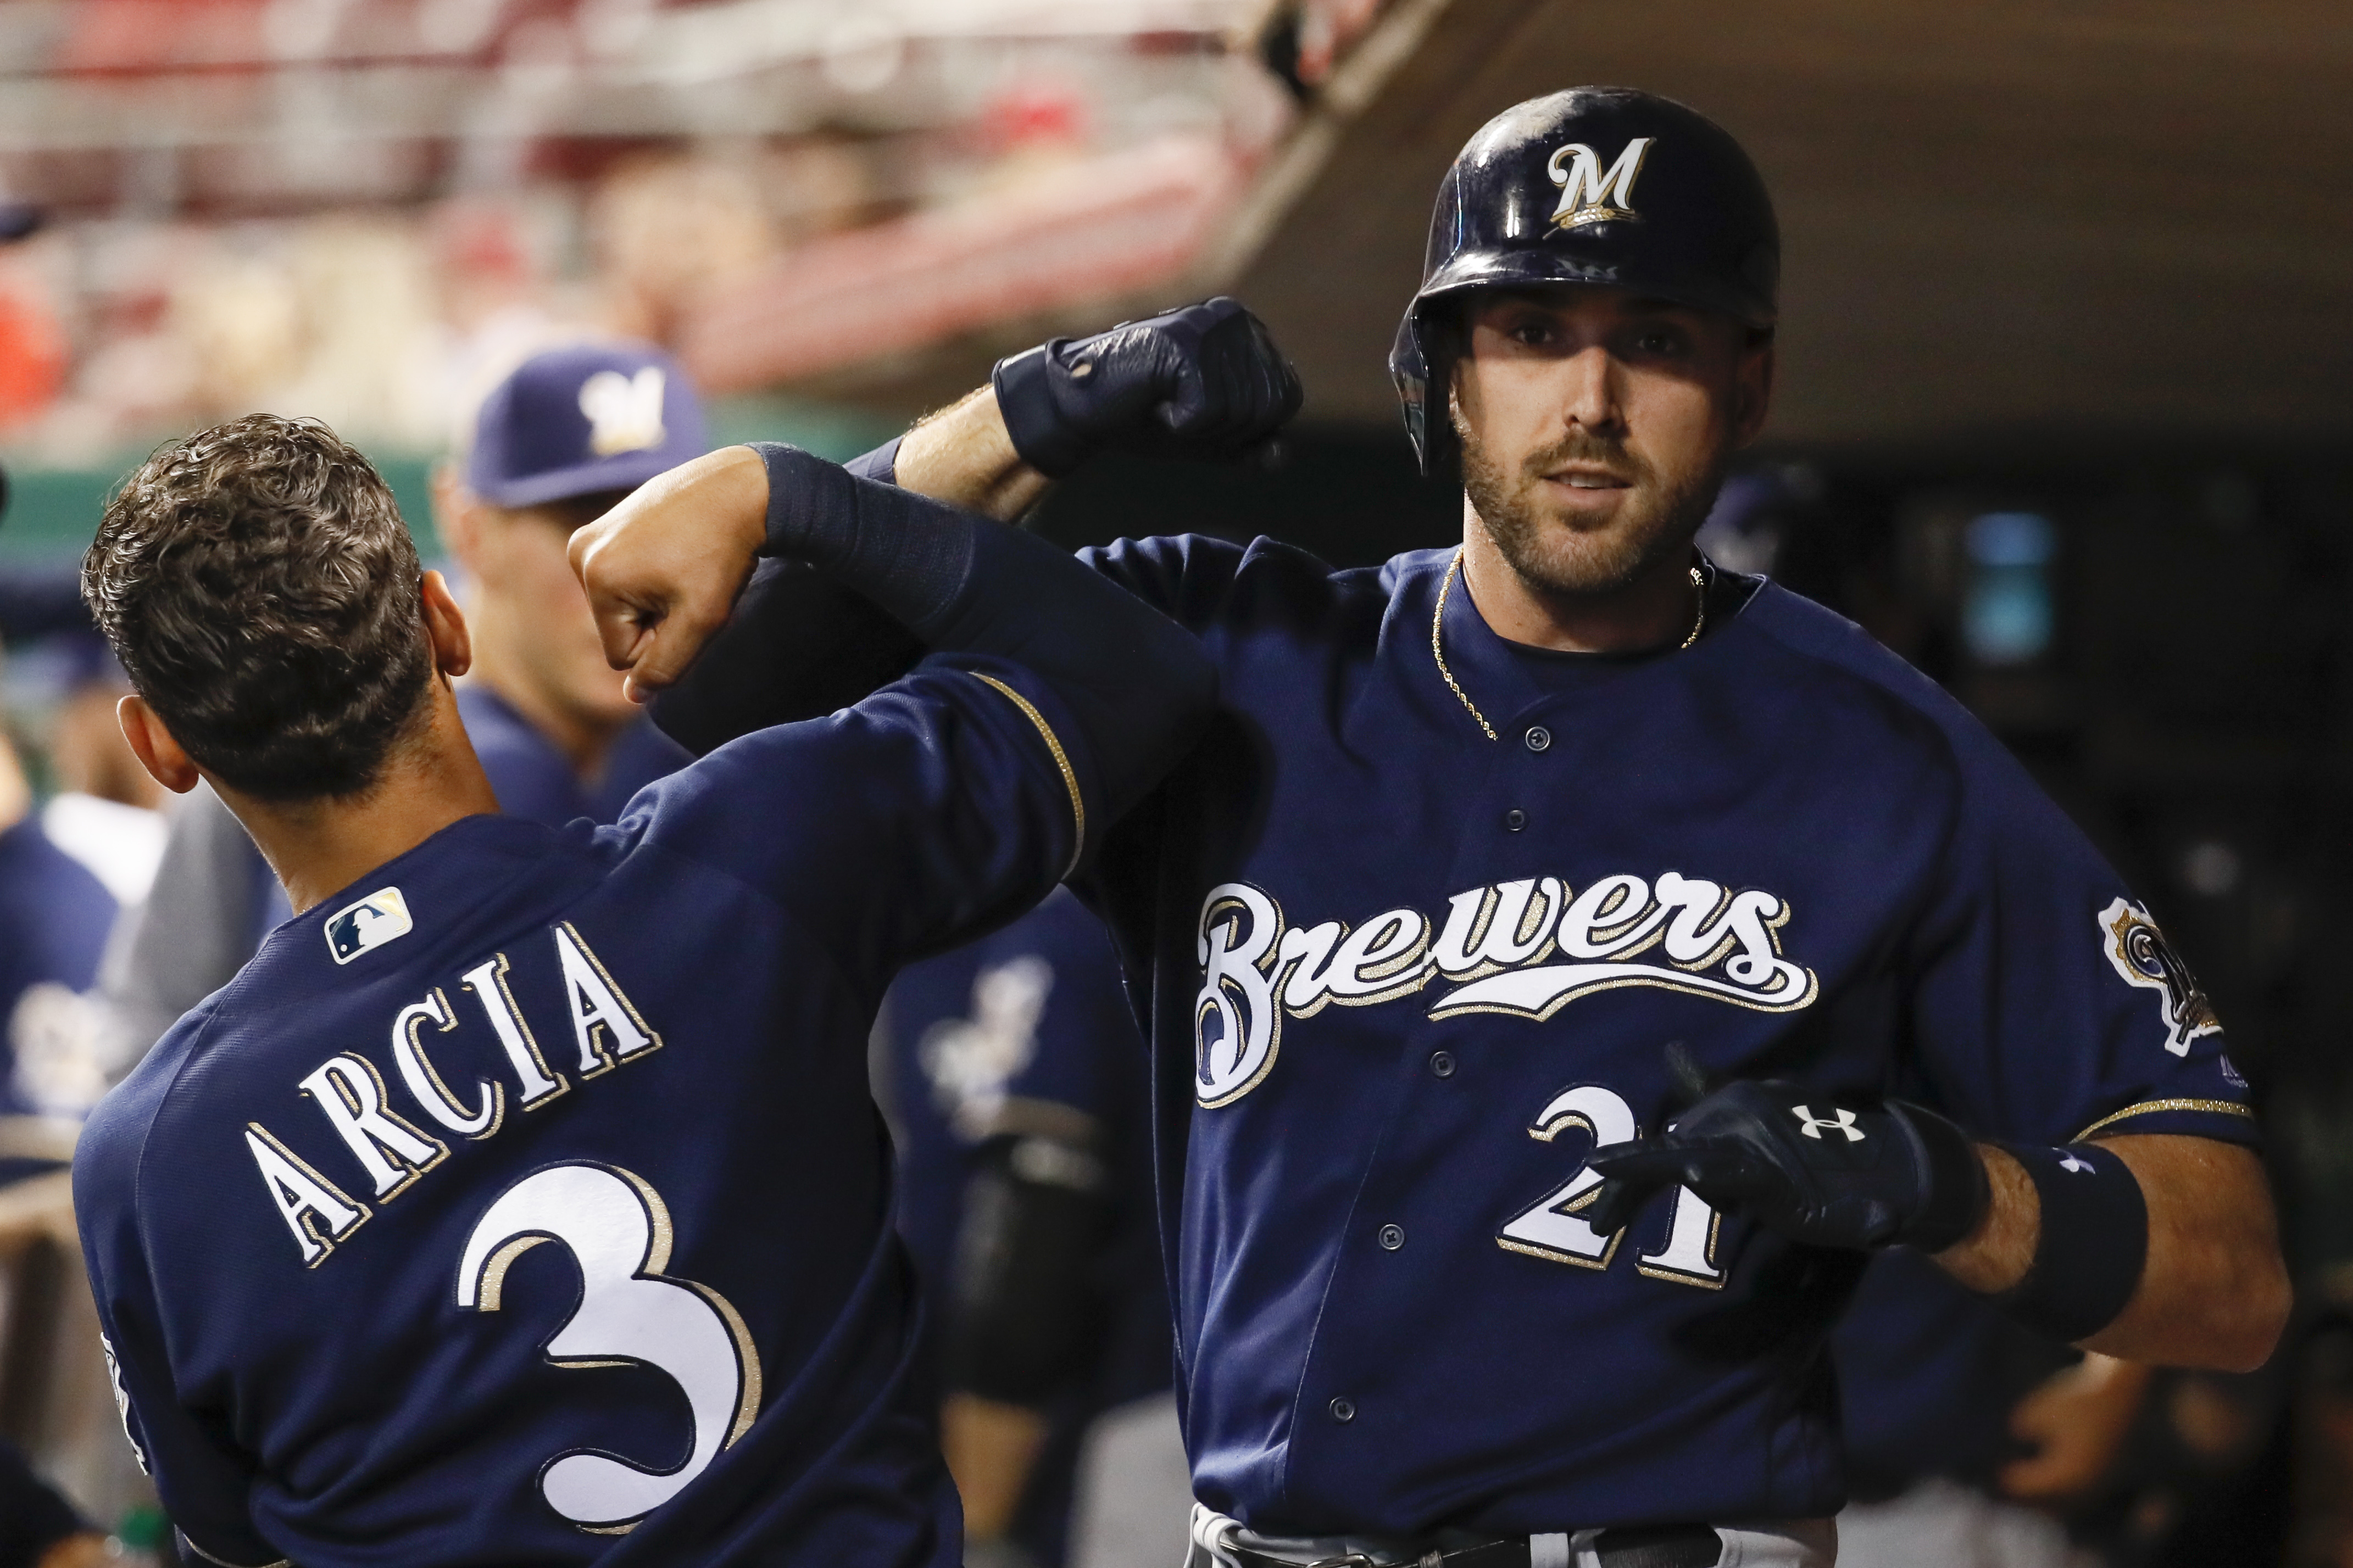 Milwaukee Brewers' Travis Shaw (21) celebrates in the dugout with Orlando Arcia (3) after hitting a two-run home run off Cincinnati Reds relief pitcher Ariel Hernandez during the eighth inning Tuesday, Sept. 5, 2017, in Cincinnati. (AP Photo/John Minchillo)